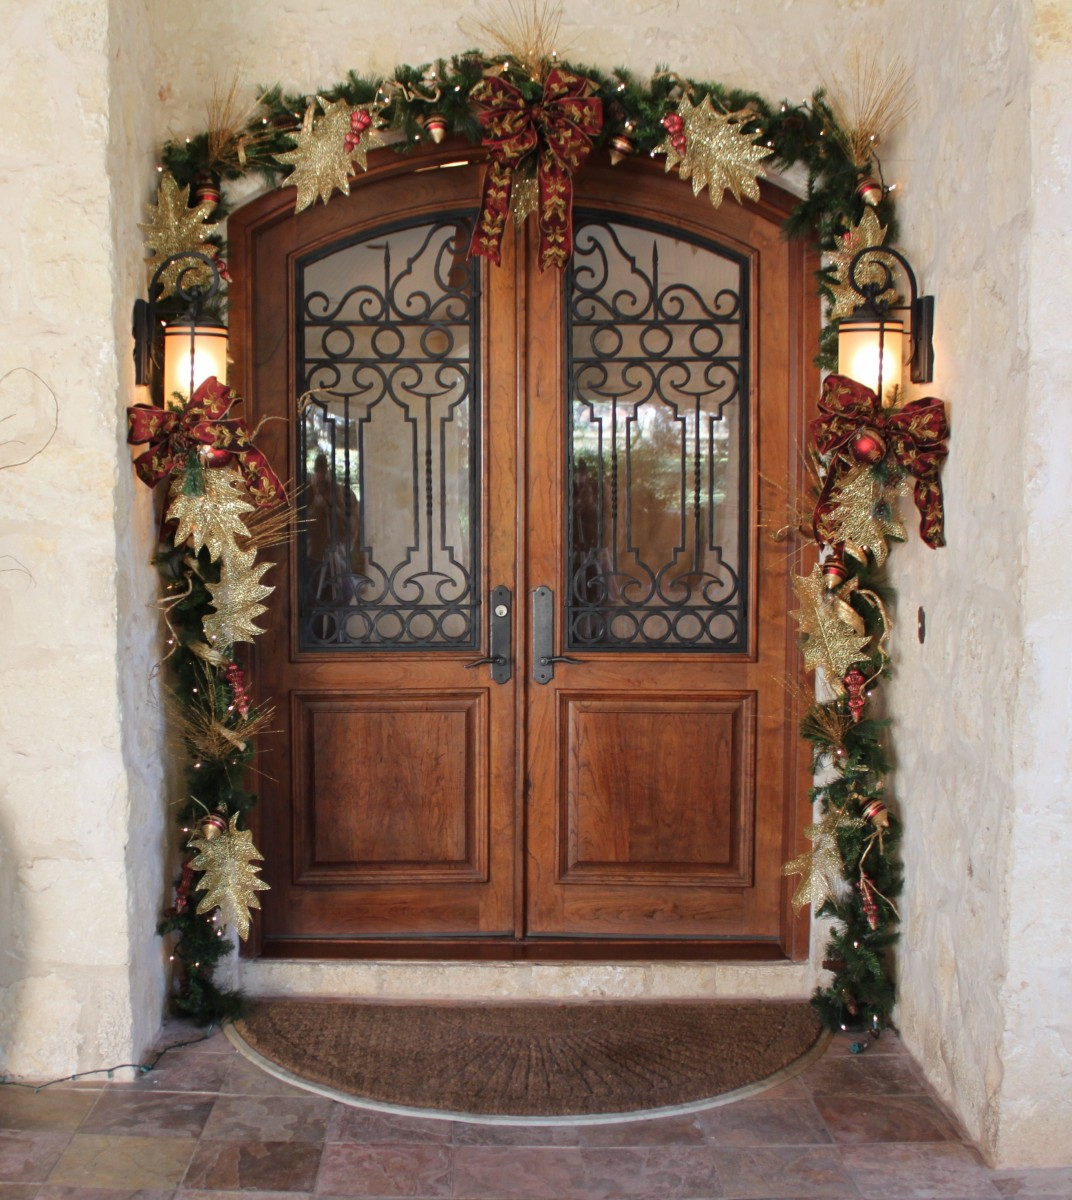 1200 #925D39 Wood And Iron Door Gallery – The Front Door Company save image Wood And Iron Doors Exterior 41171072